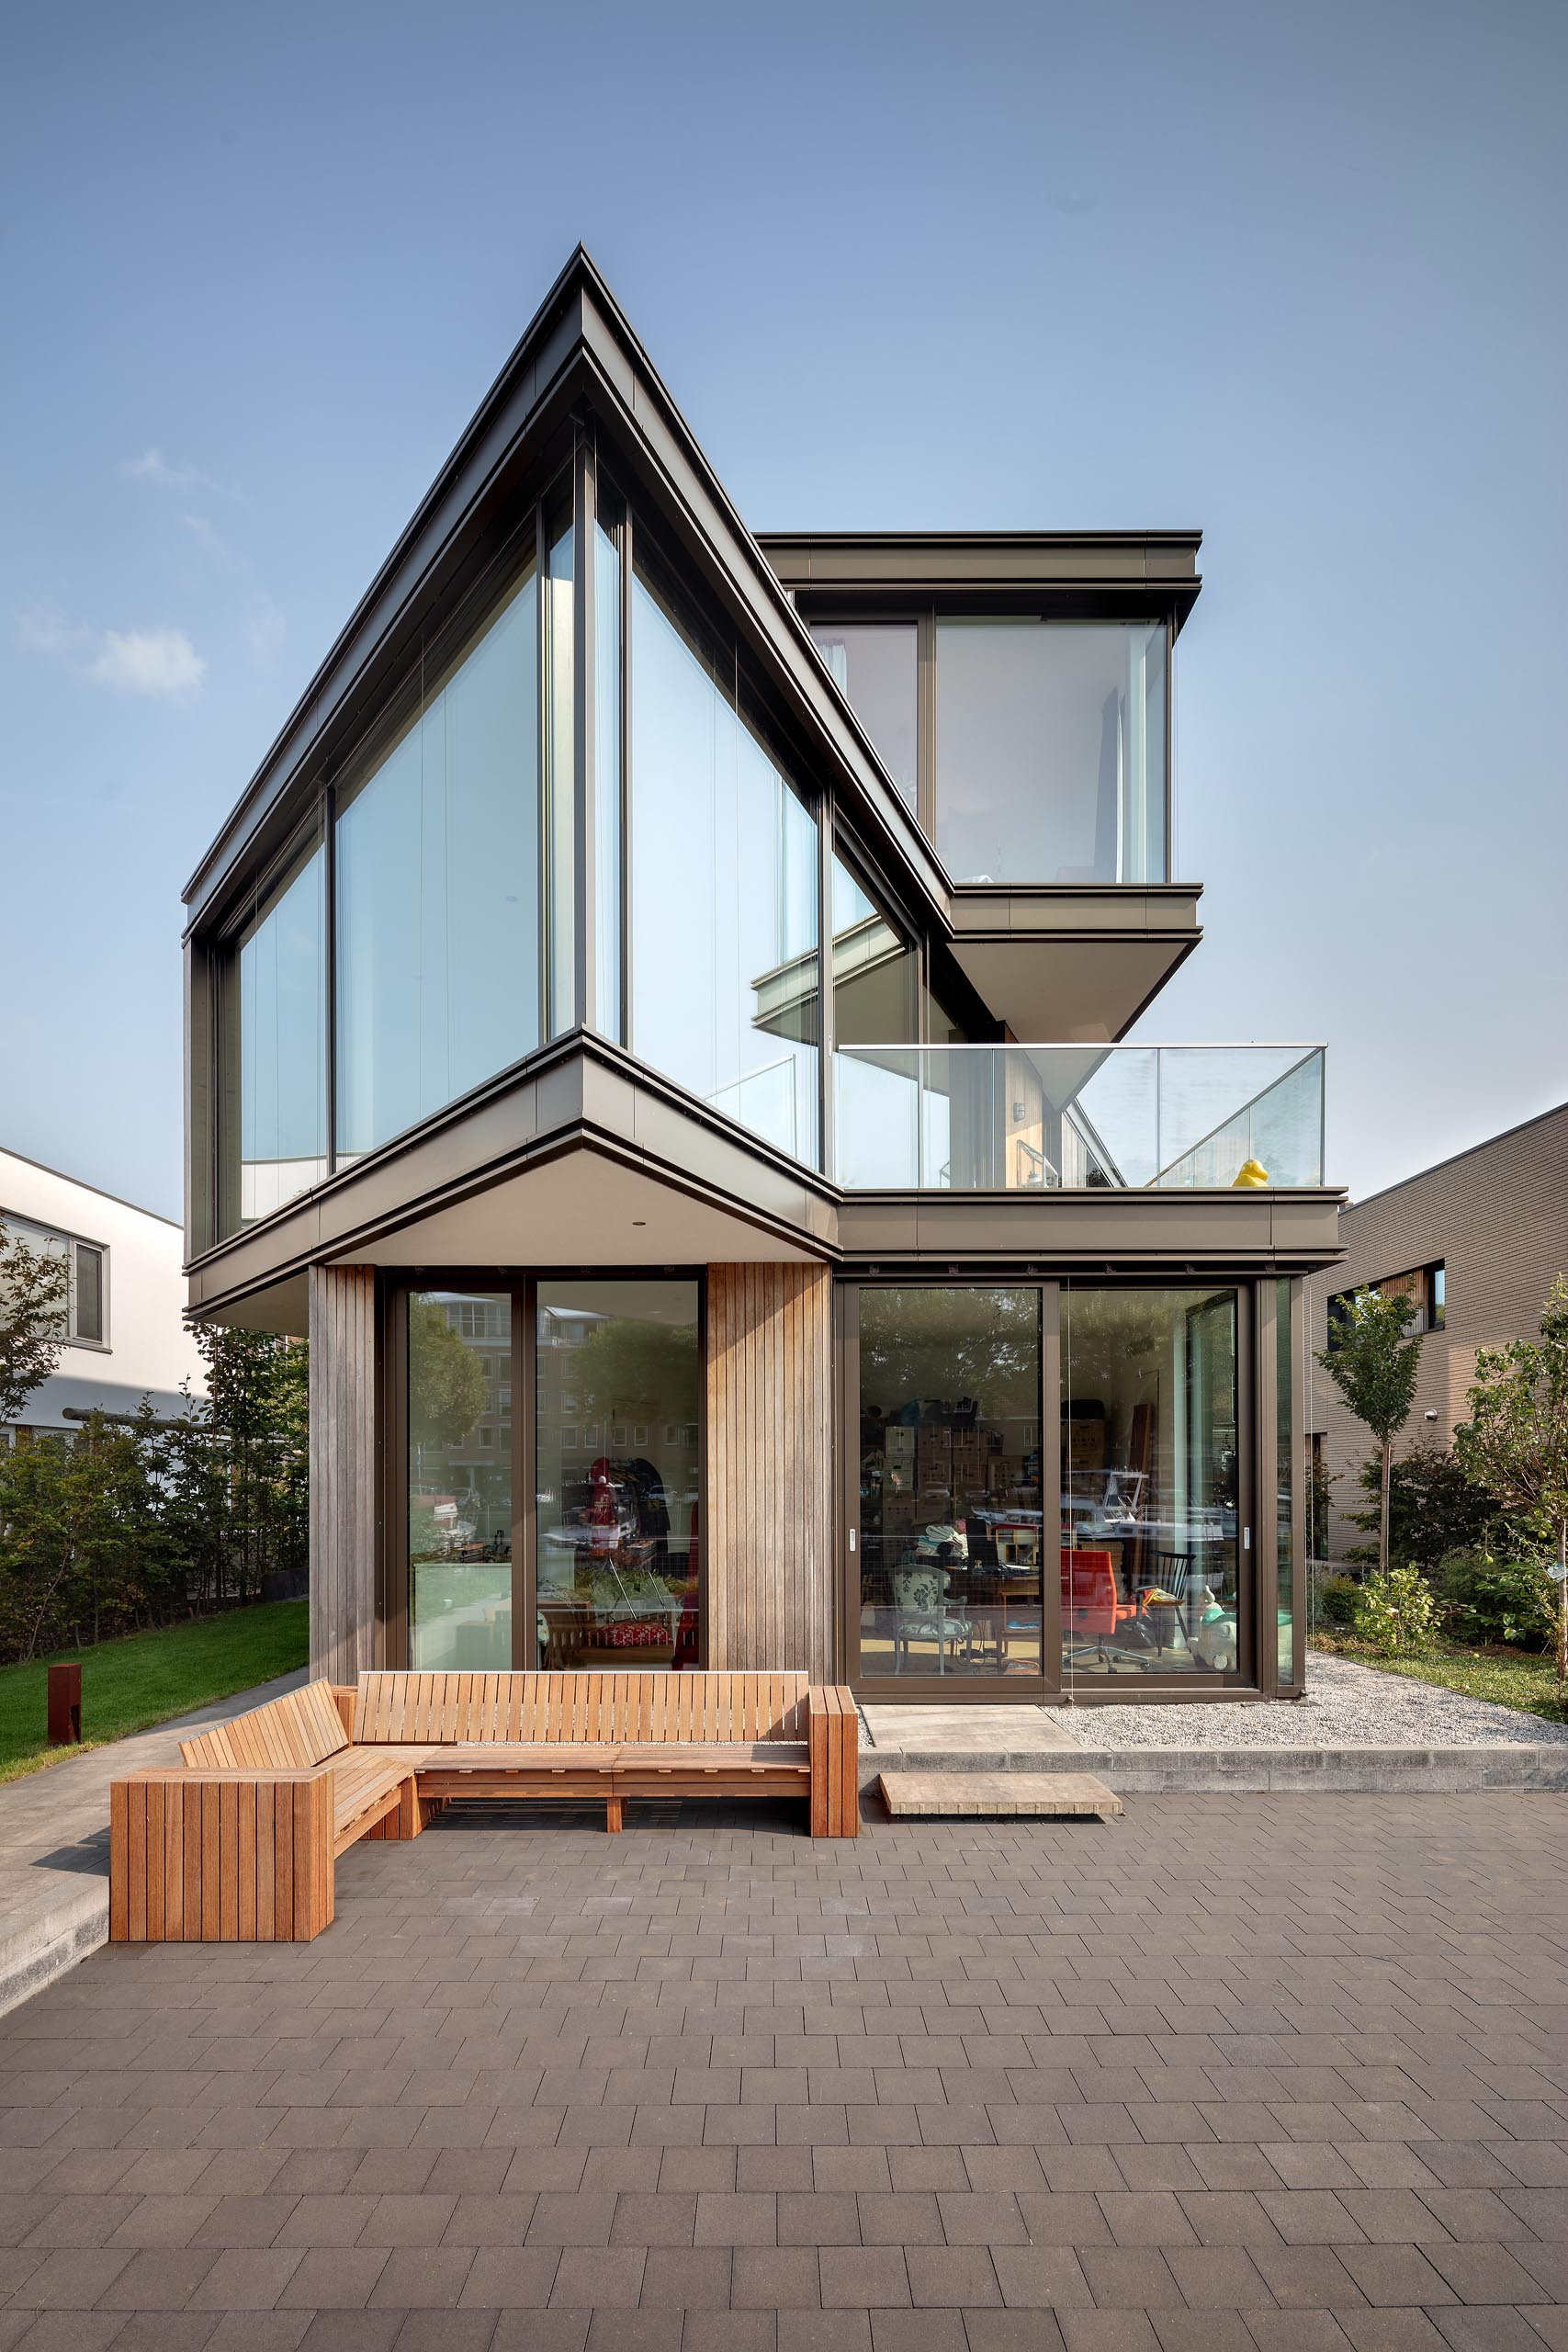 A modern house with a sharp angle and glass walls.